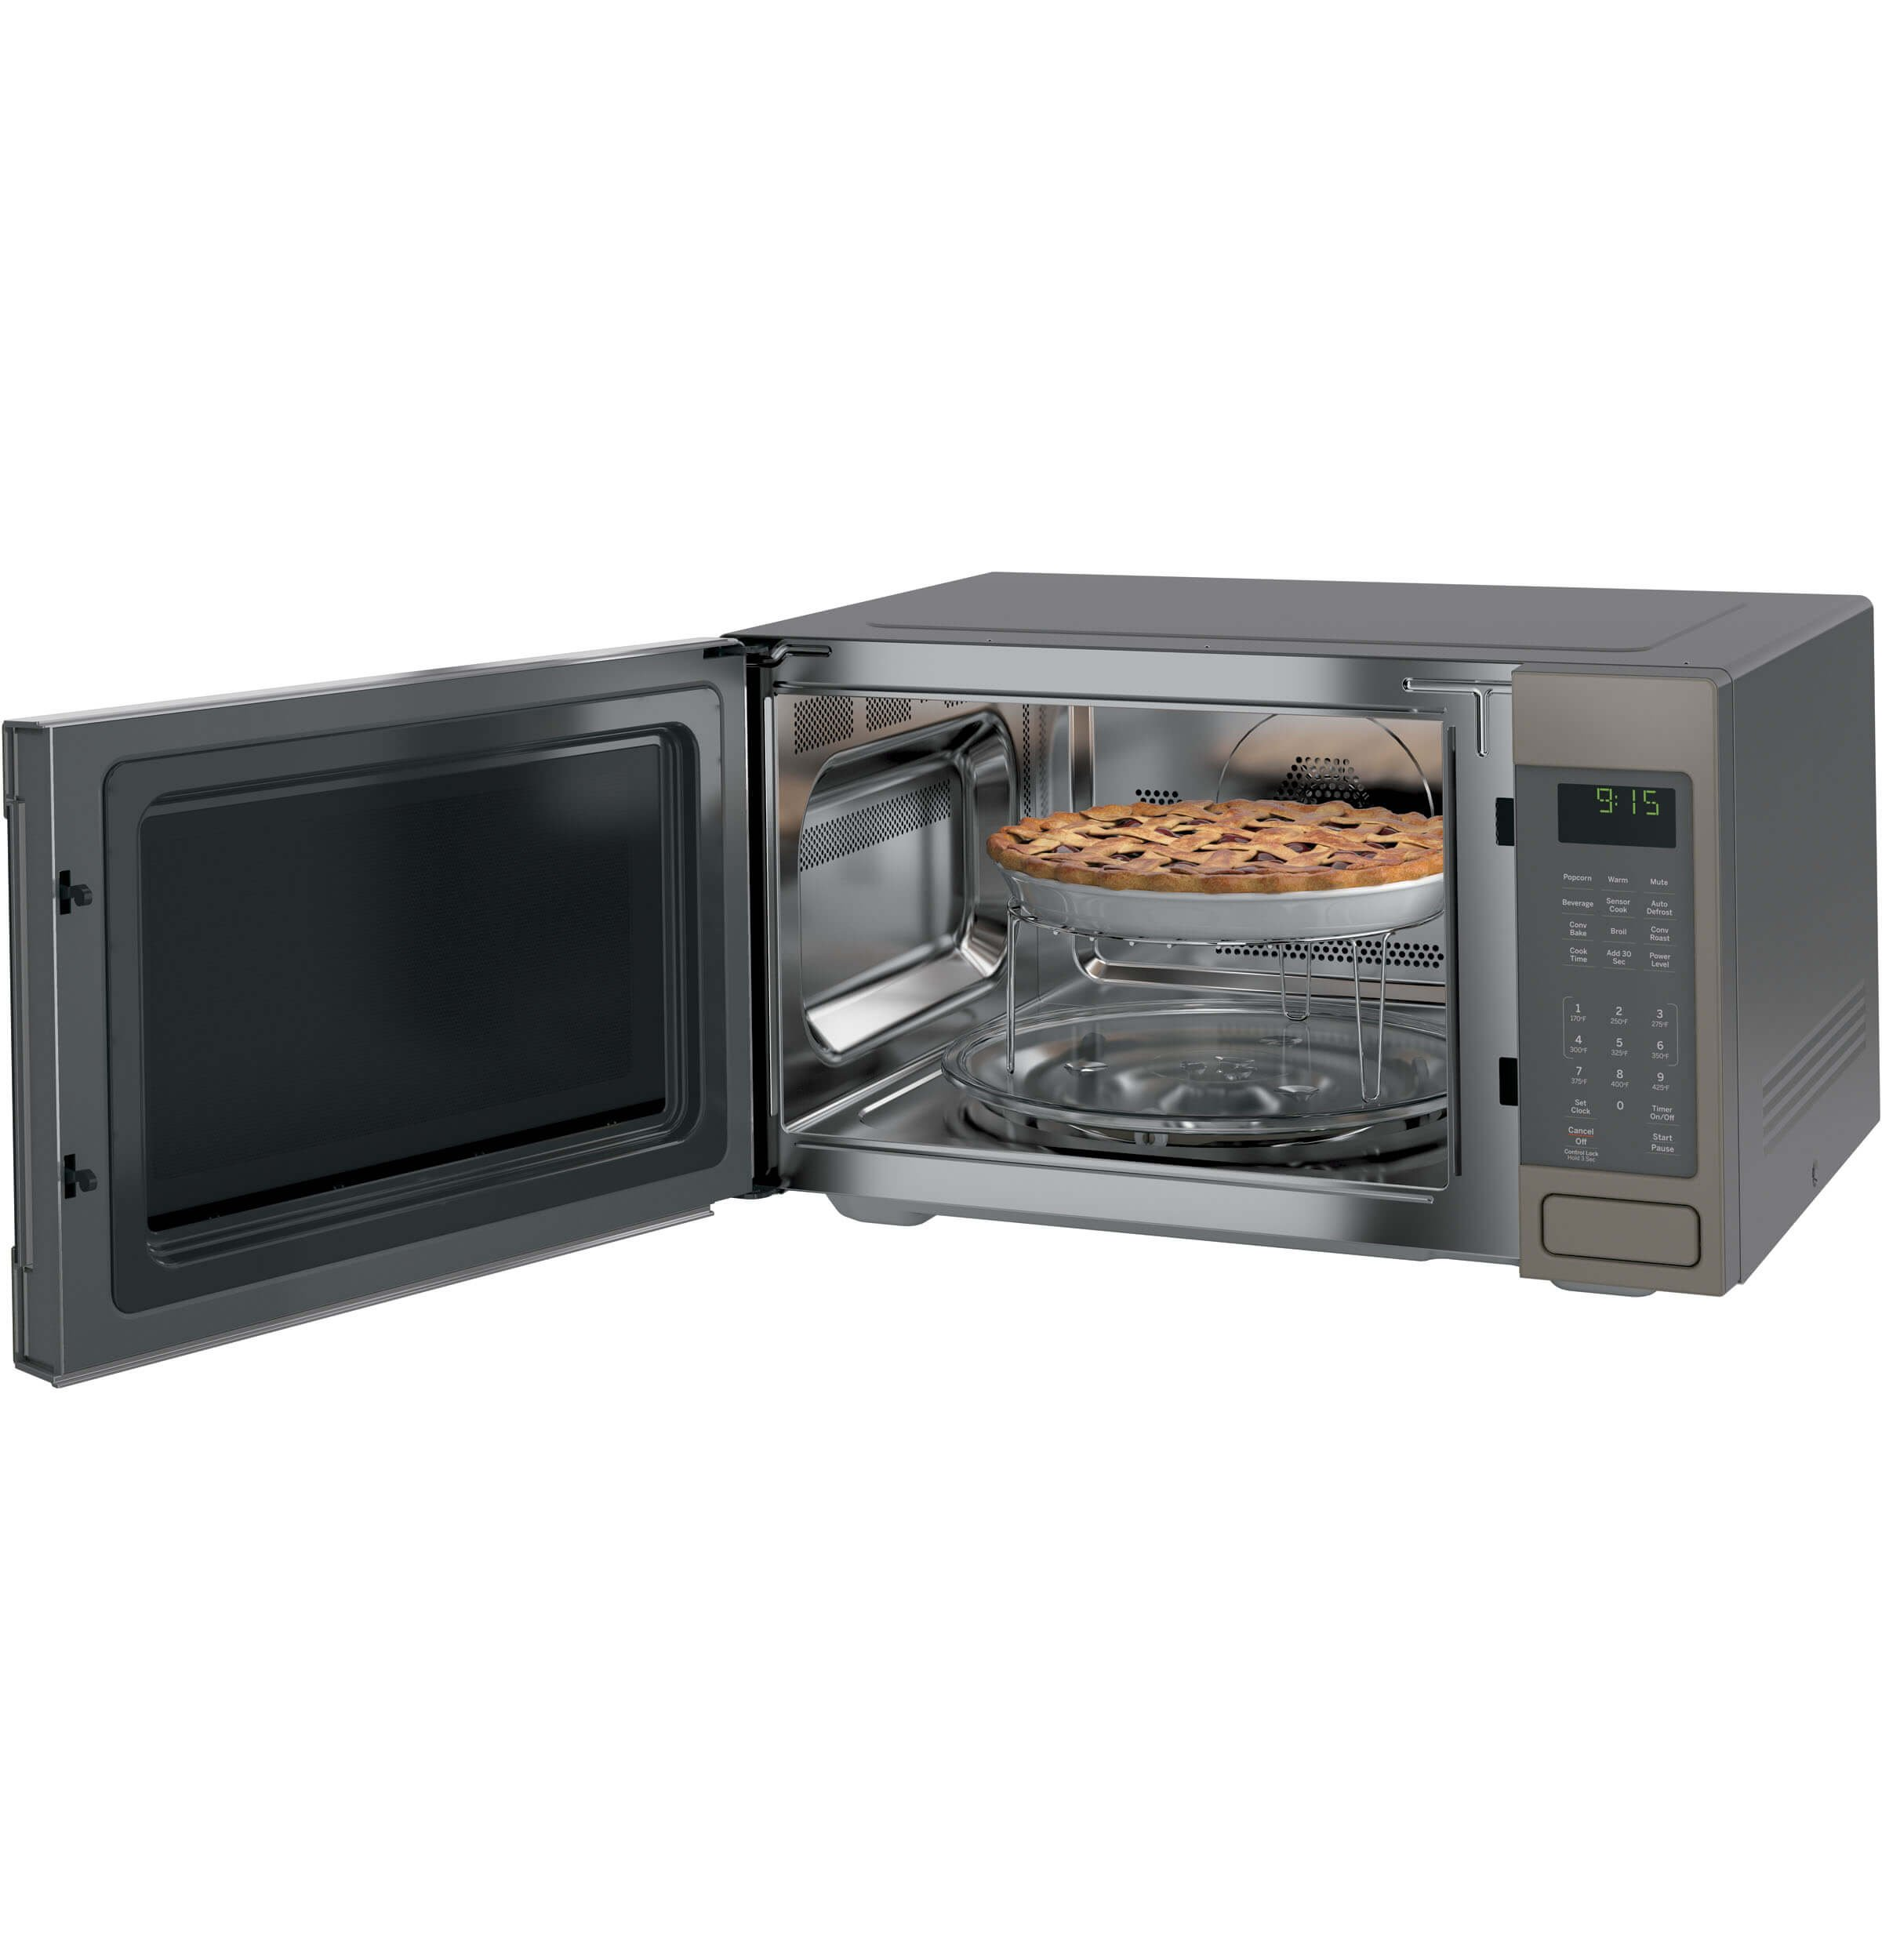 GE PEB9159EJES Microwave Oven by GE (Image #4)